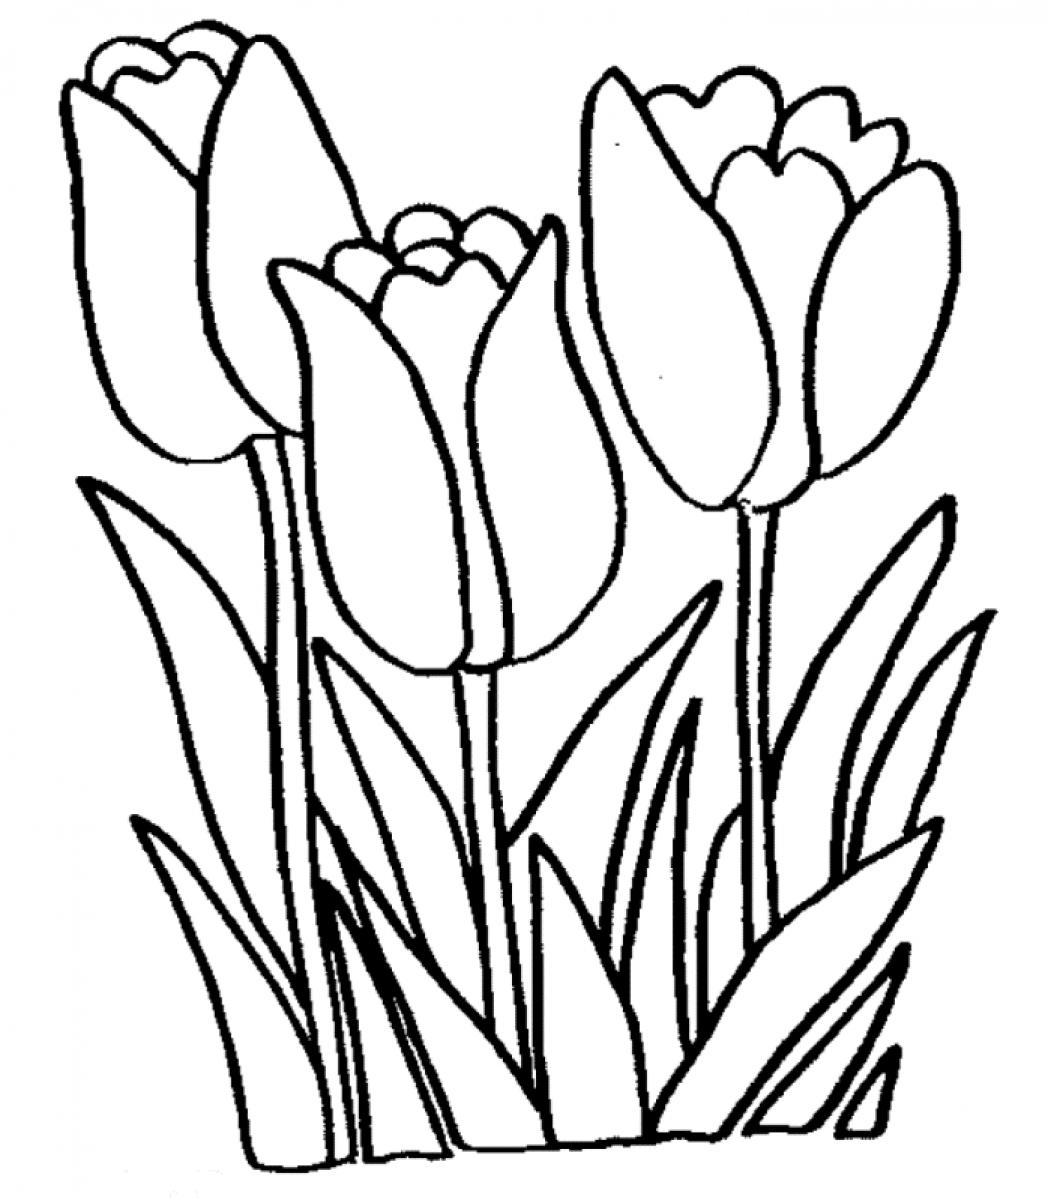 coloring pages free online - photo#36